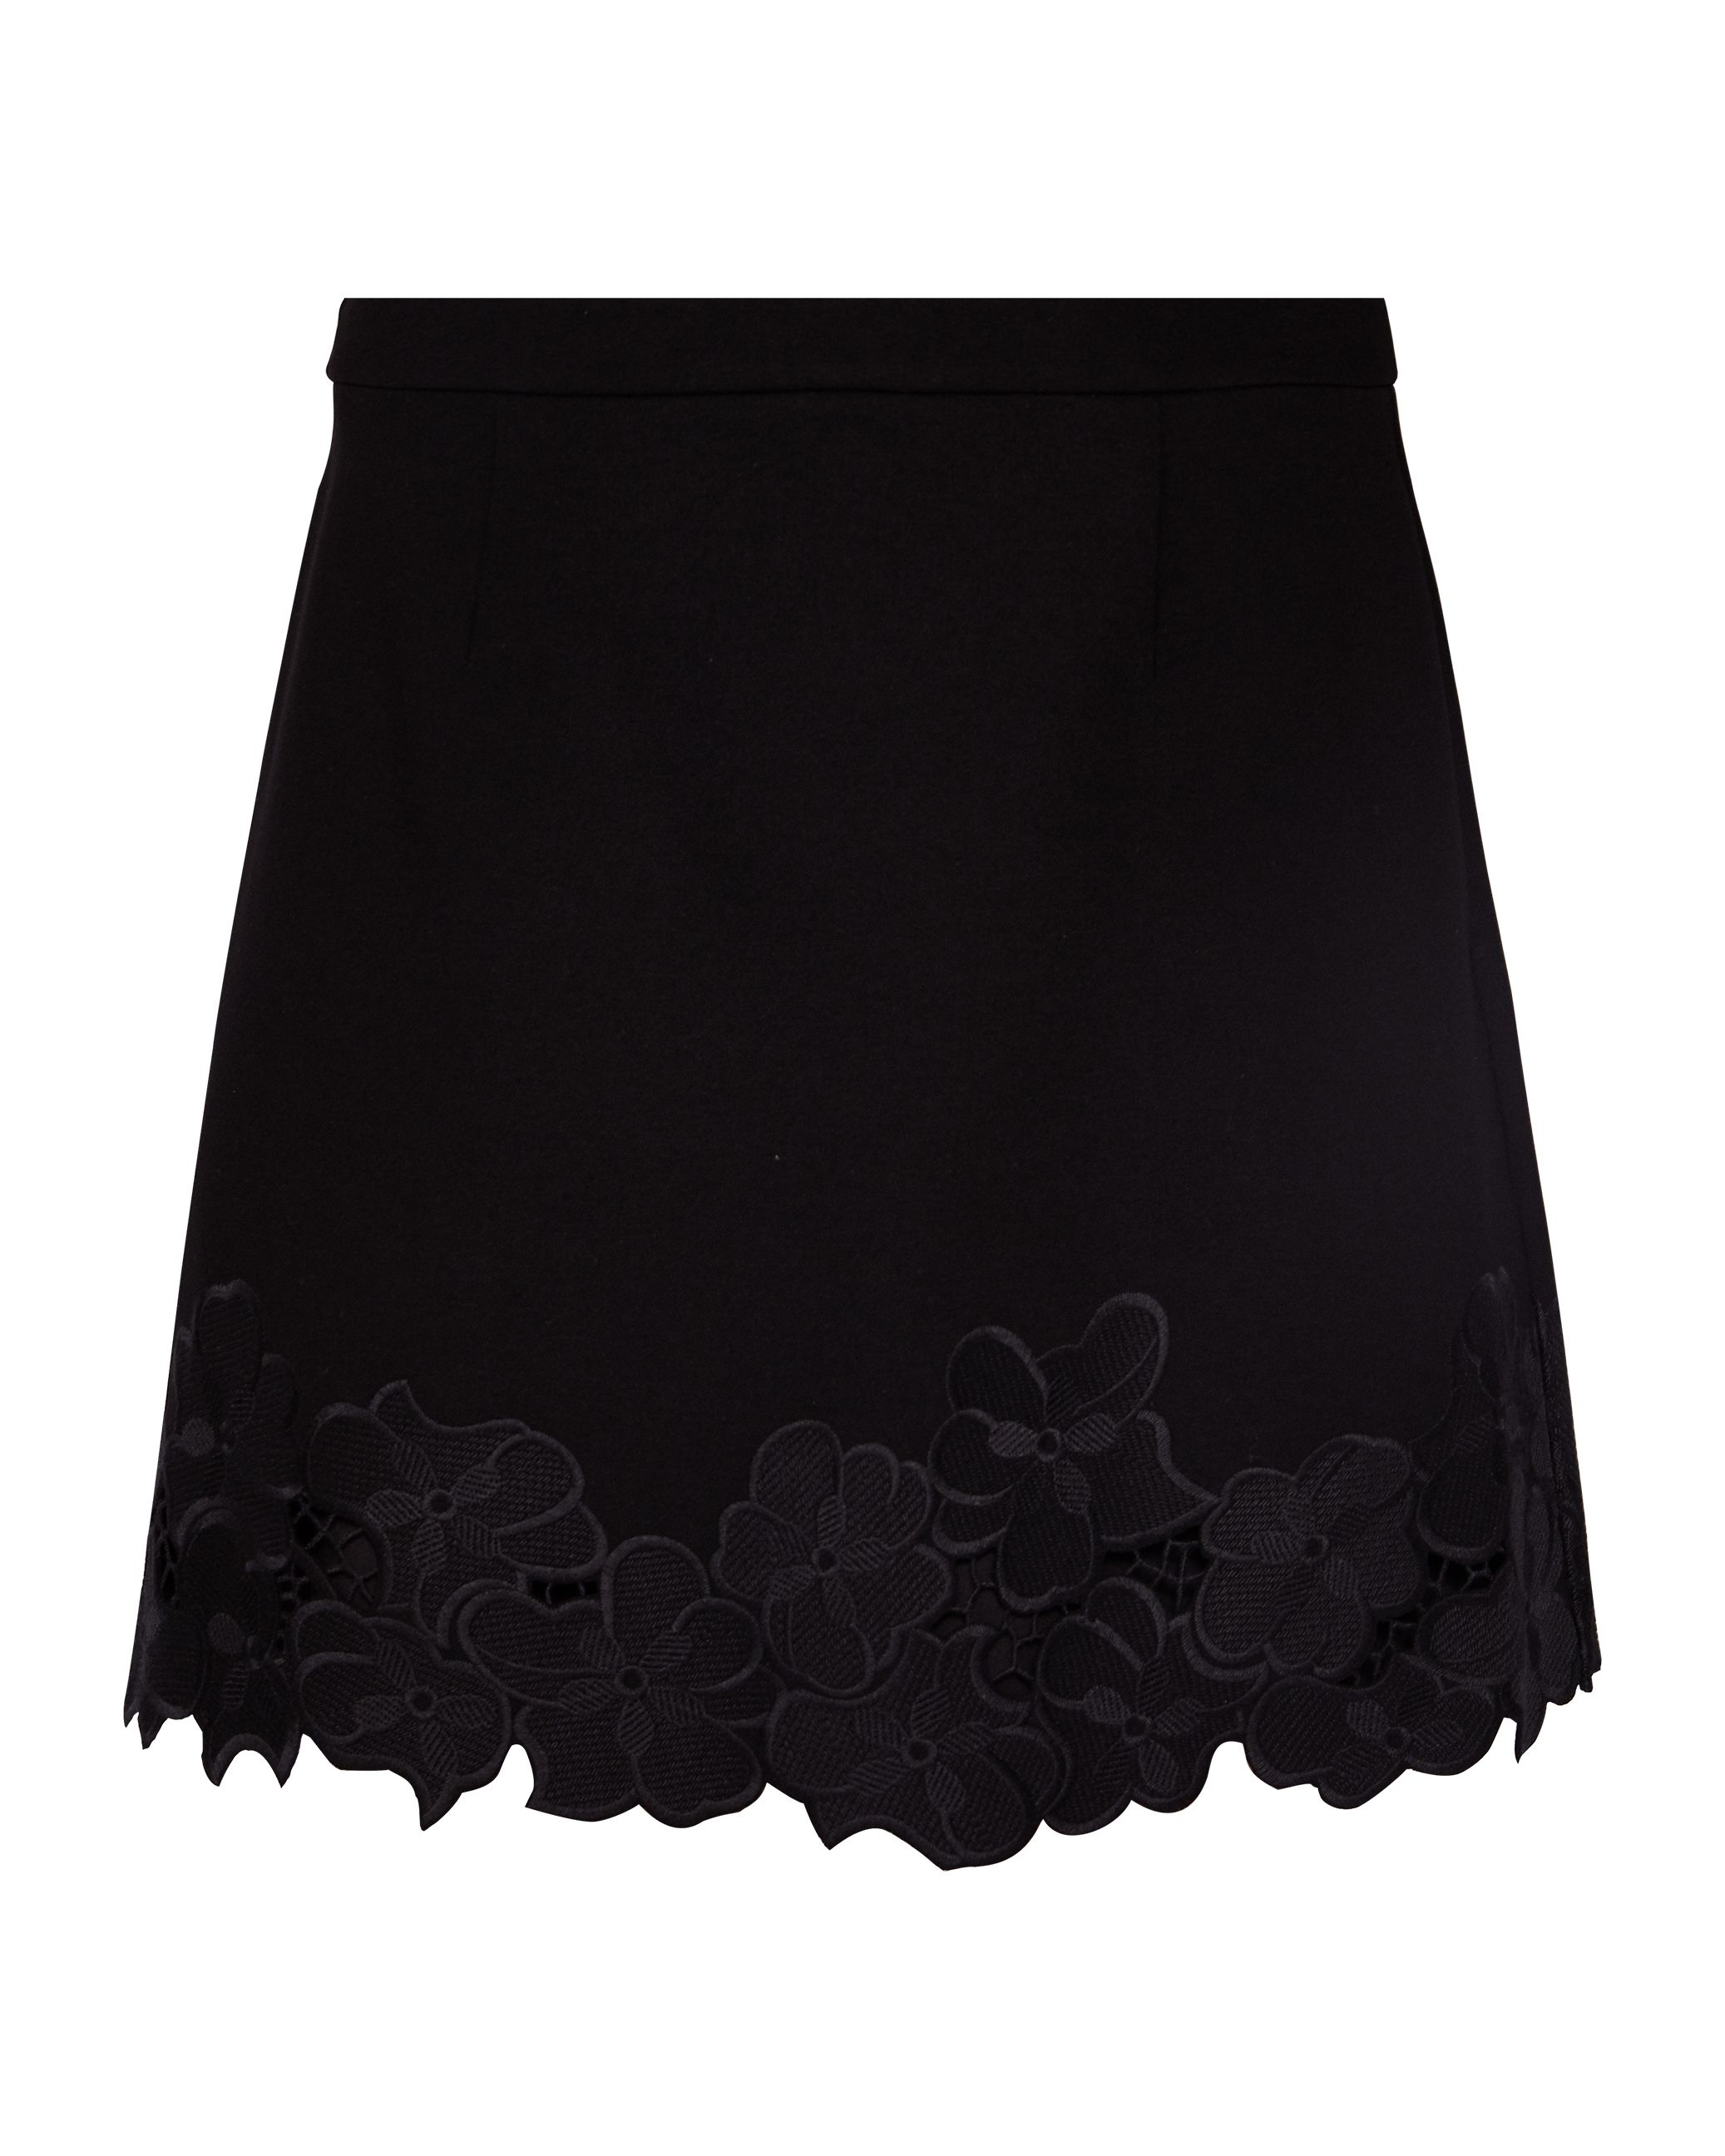 Ted Baker Magolia Lace Embroidered Hem Mini Skirt, Black